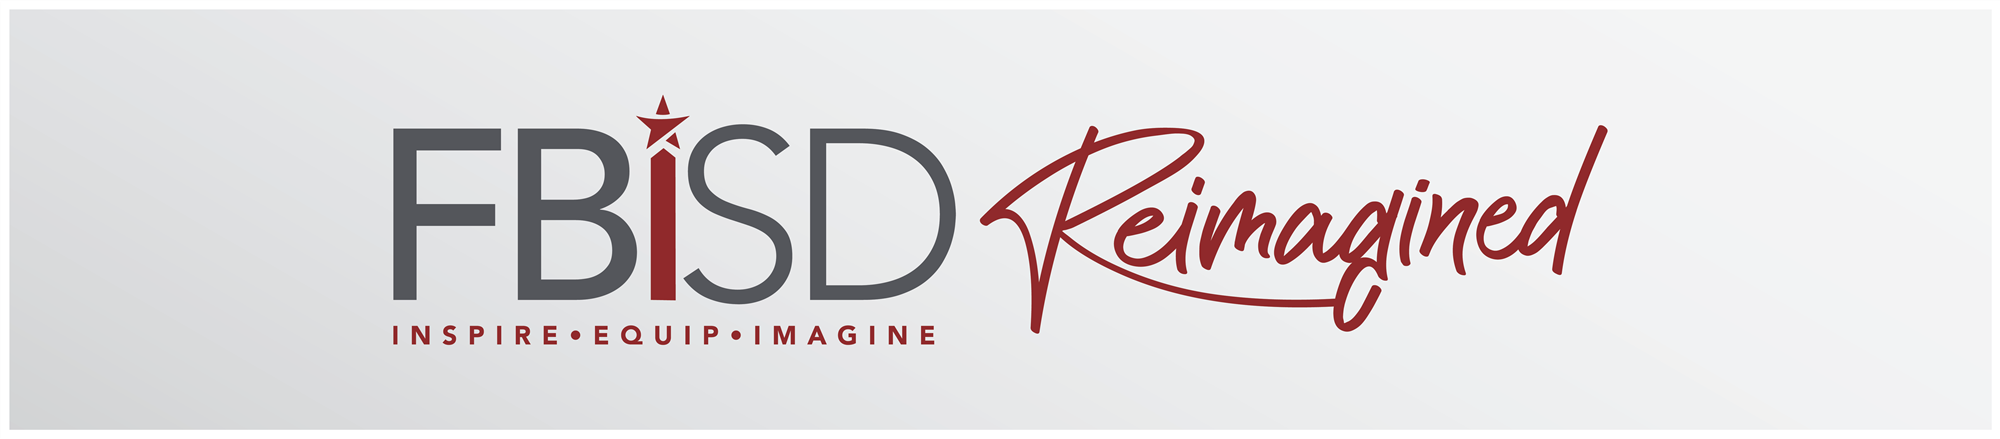 FBISD Reimagined